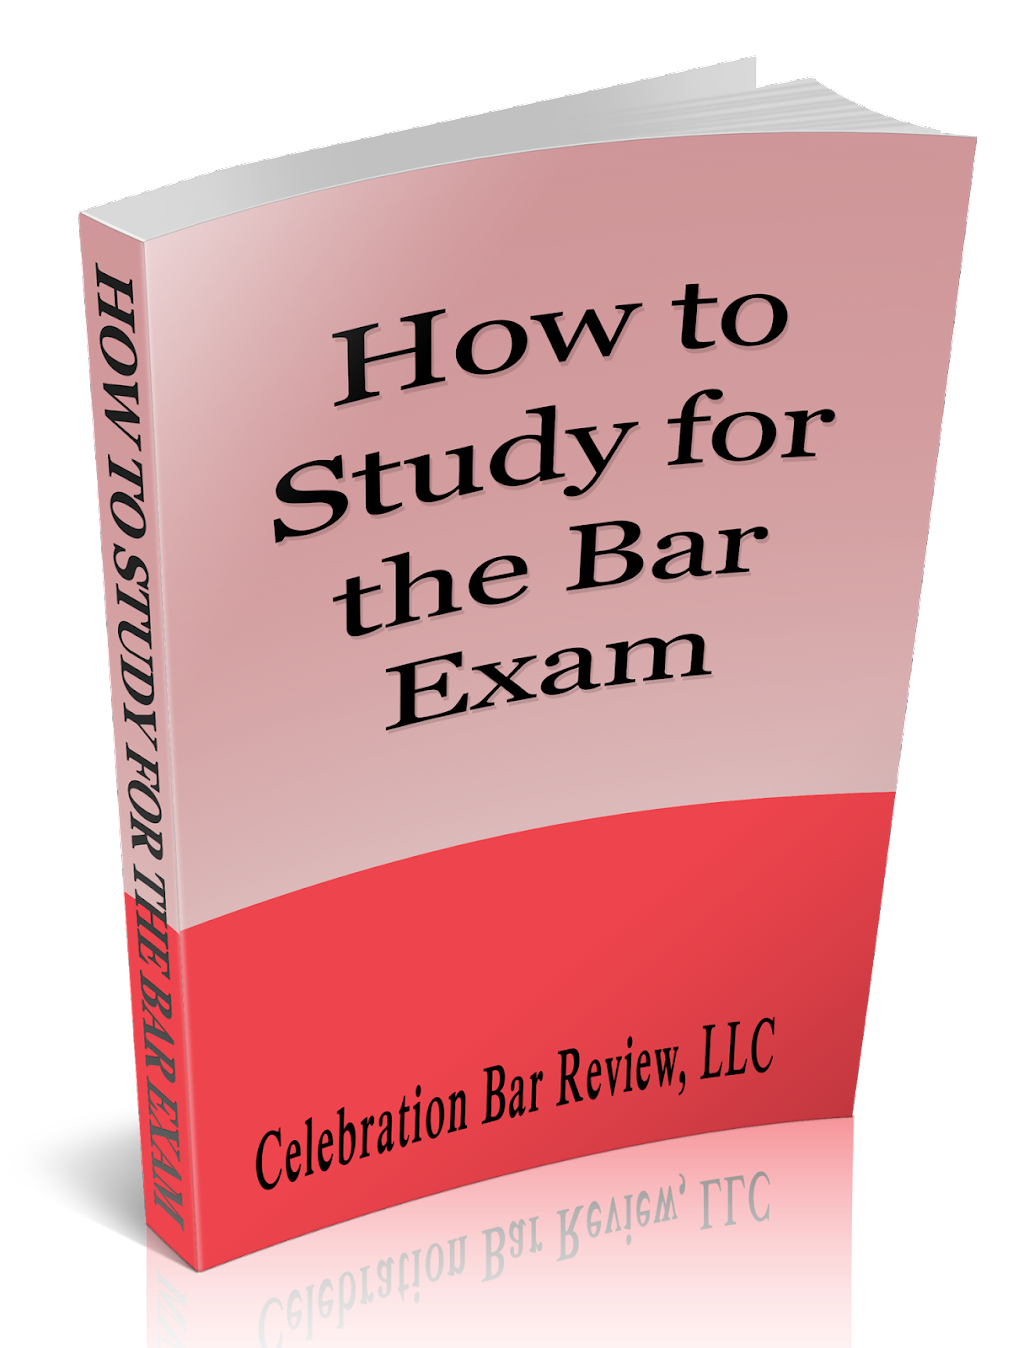 How to Study for the Bar Exam